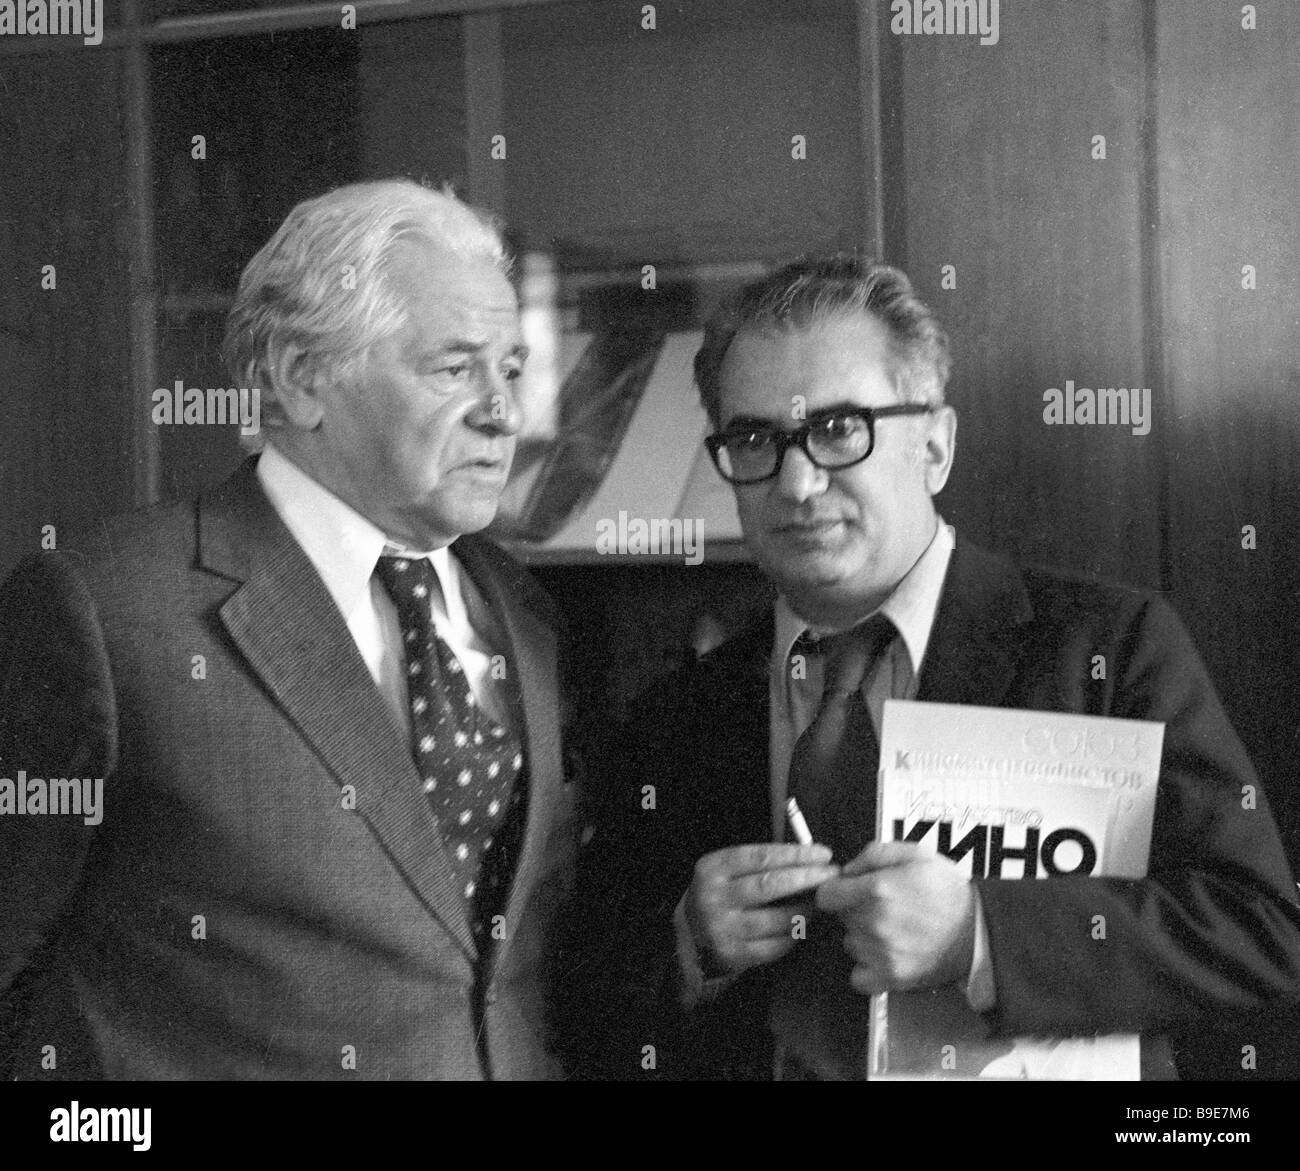 Bulgarian film critic Emil Petrov right and Soviet script writer Alexei Kapler left - Stock Image